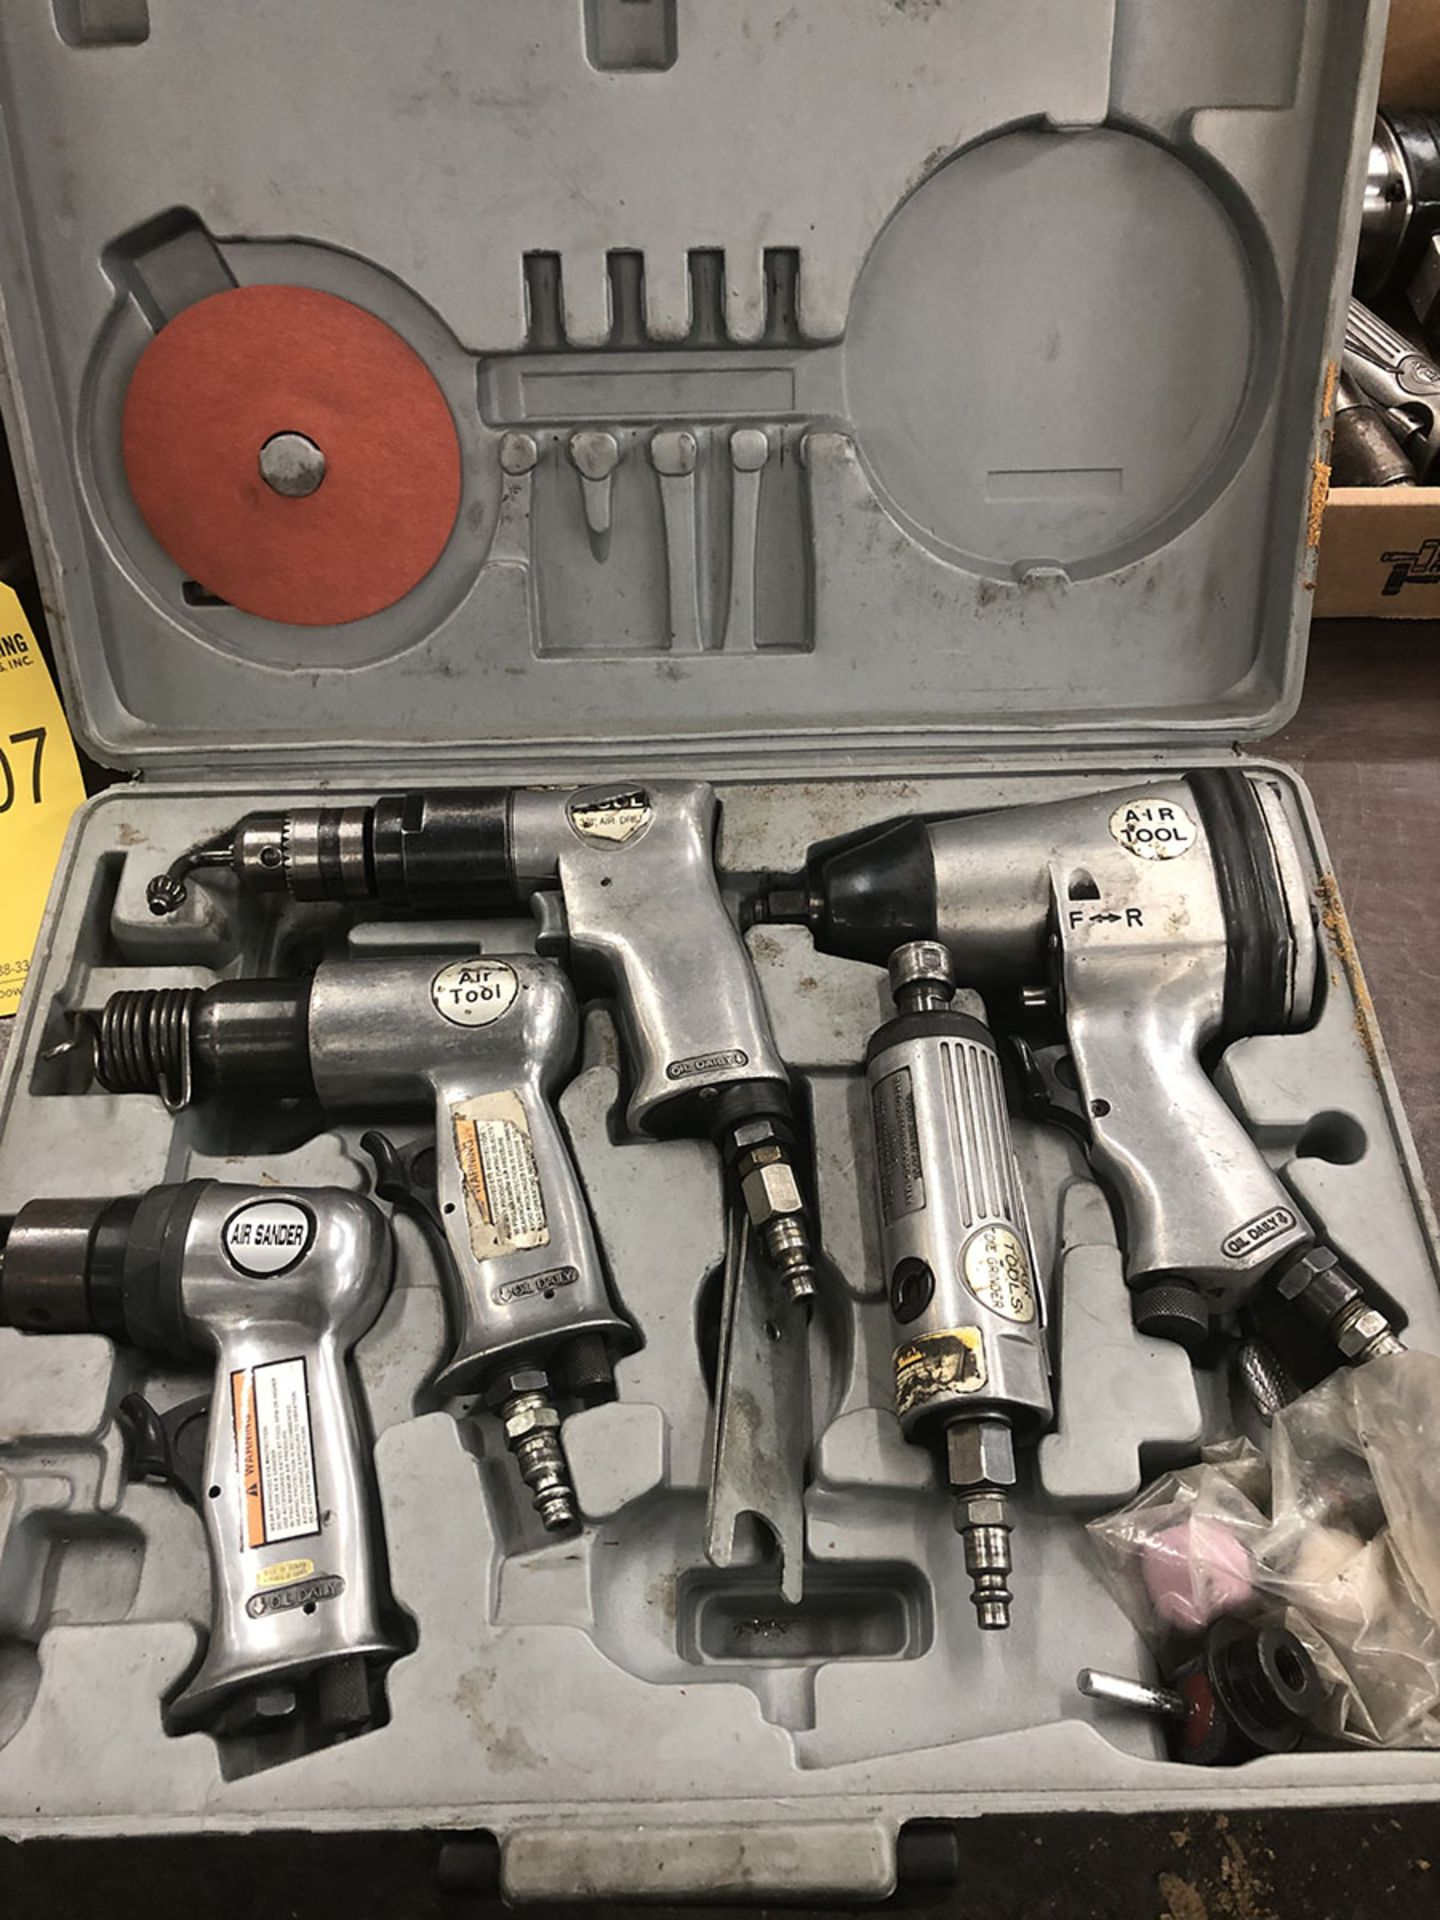 Lot 8 - 5-TOOL PNEUMATIC KIT; GRINDER, SANDER, 3/8'' DRILL, 1/2'' IMPACT WRENCH, AND AIR HAMMER